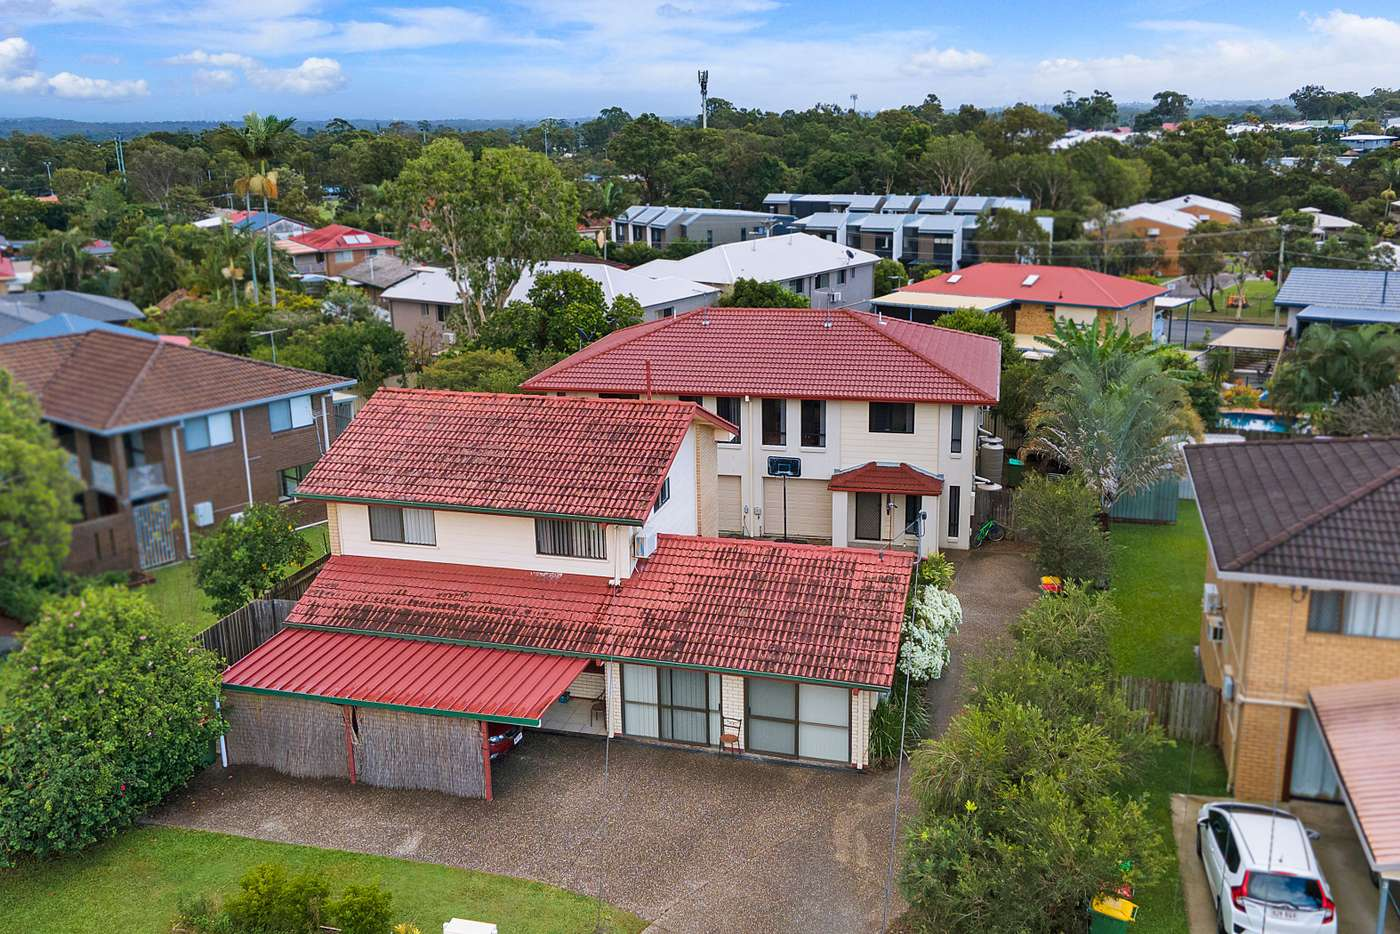 Main view of Homely blockOfUnits listing, 5 Newhaven Street, Alexandra Hills QLD 4161